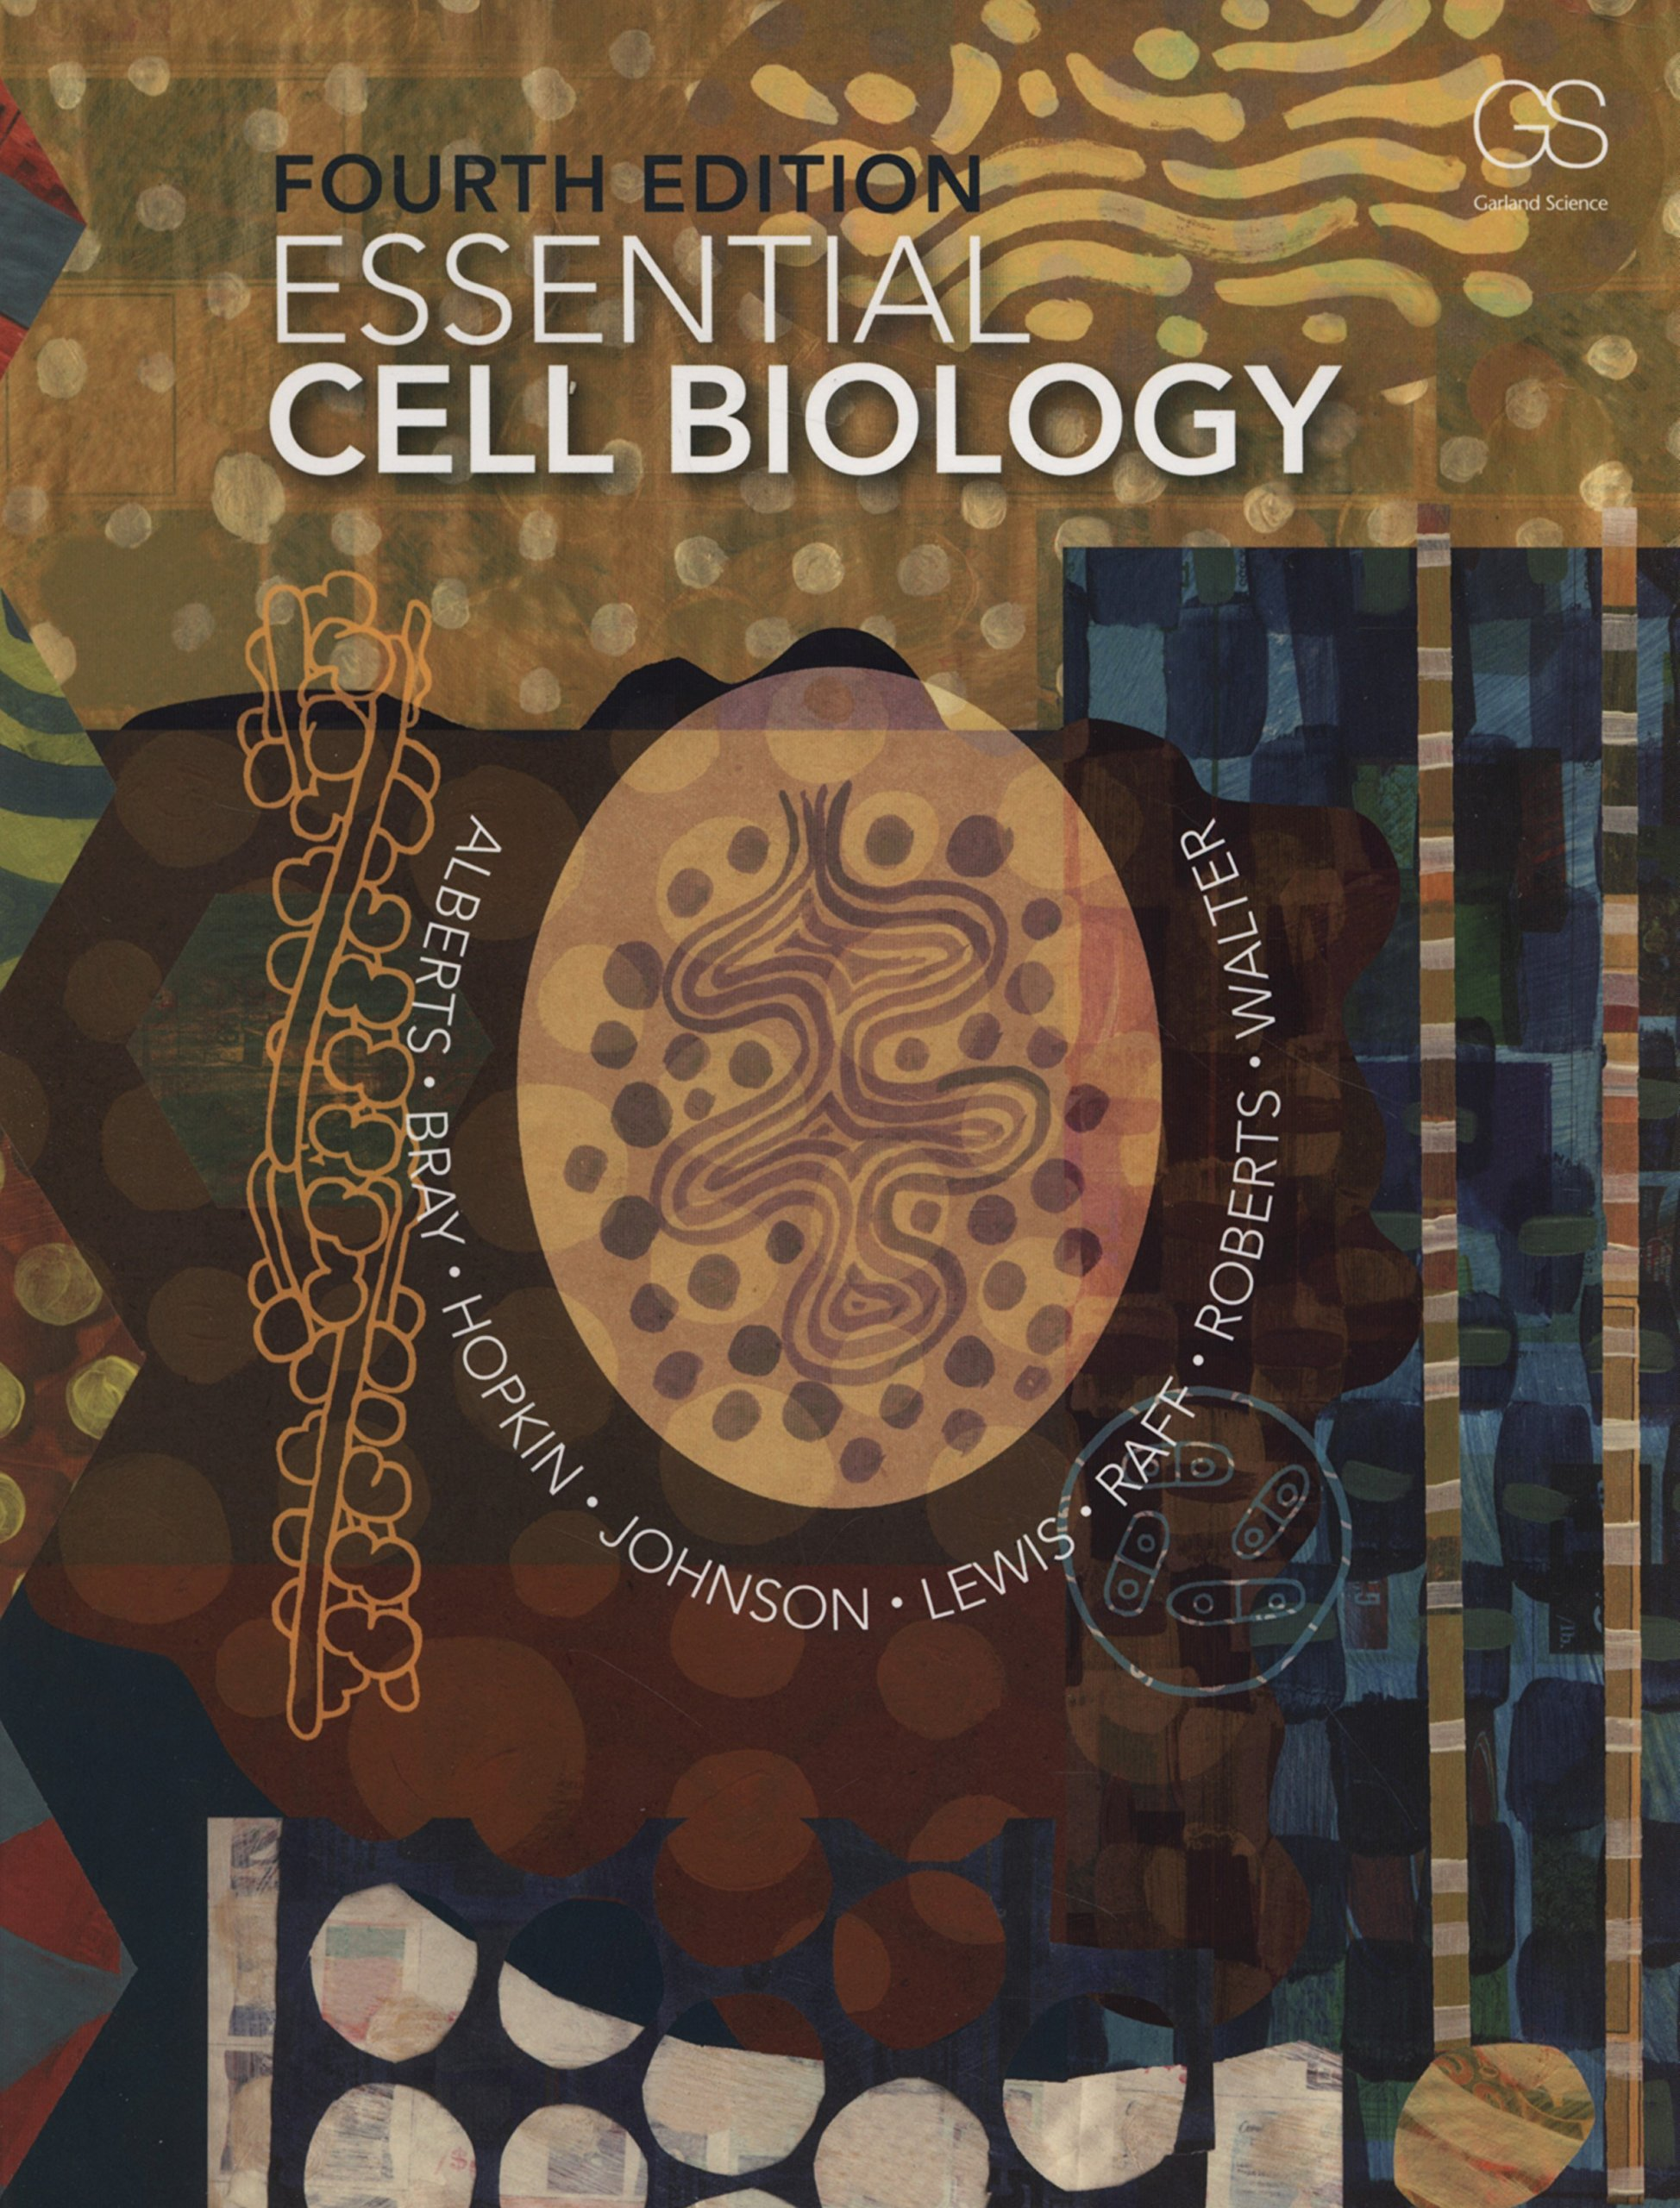 Edition alberts cell biology 4th pdf essential